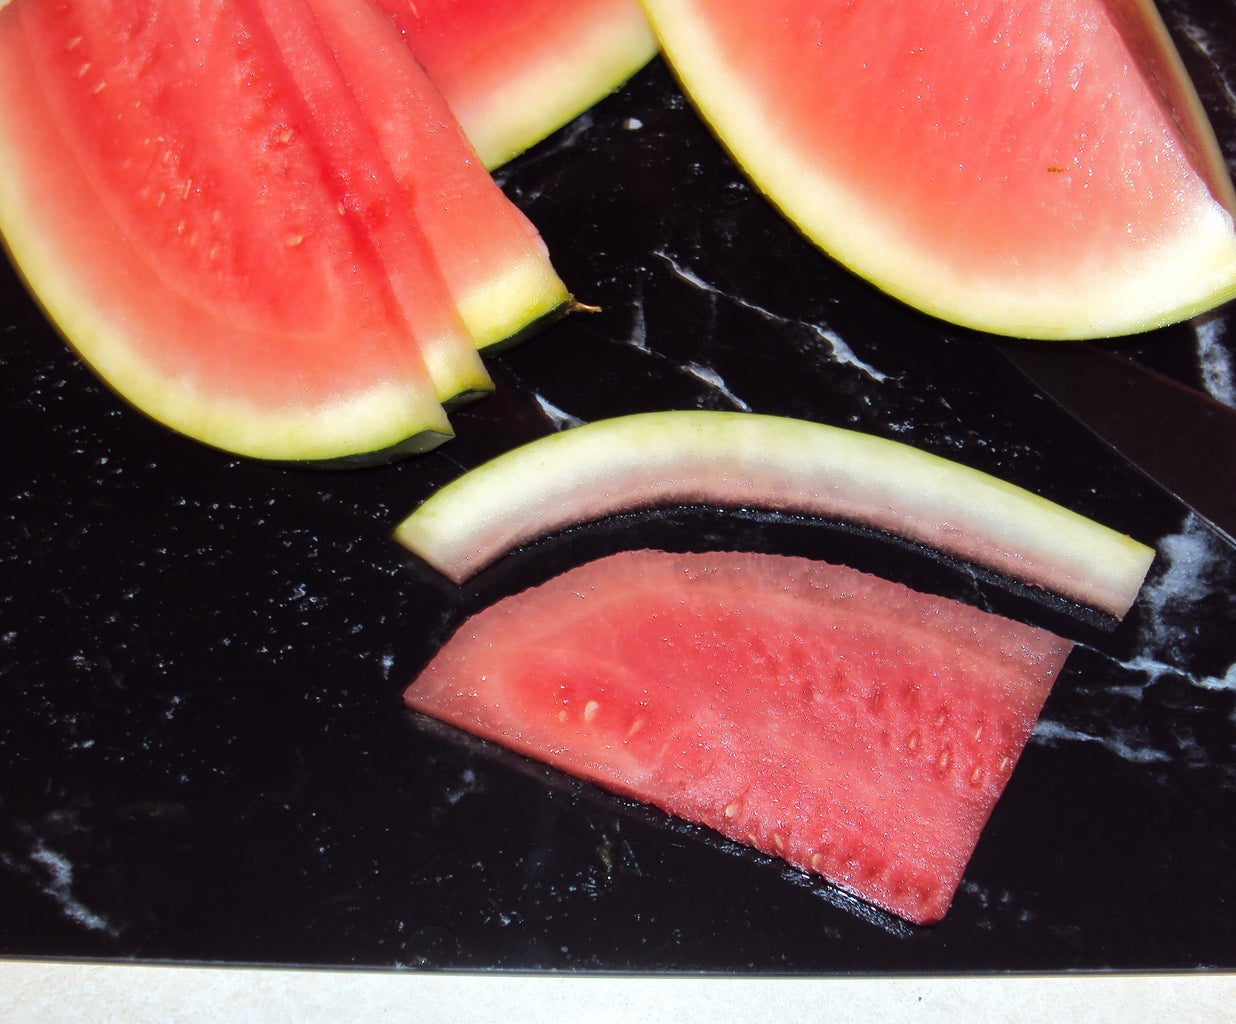 Attack the Watermelon - Carefully of Course